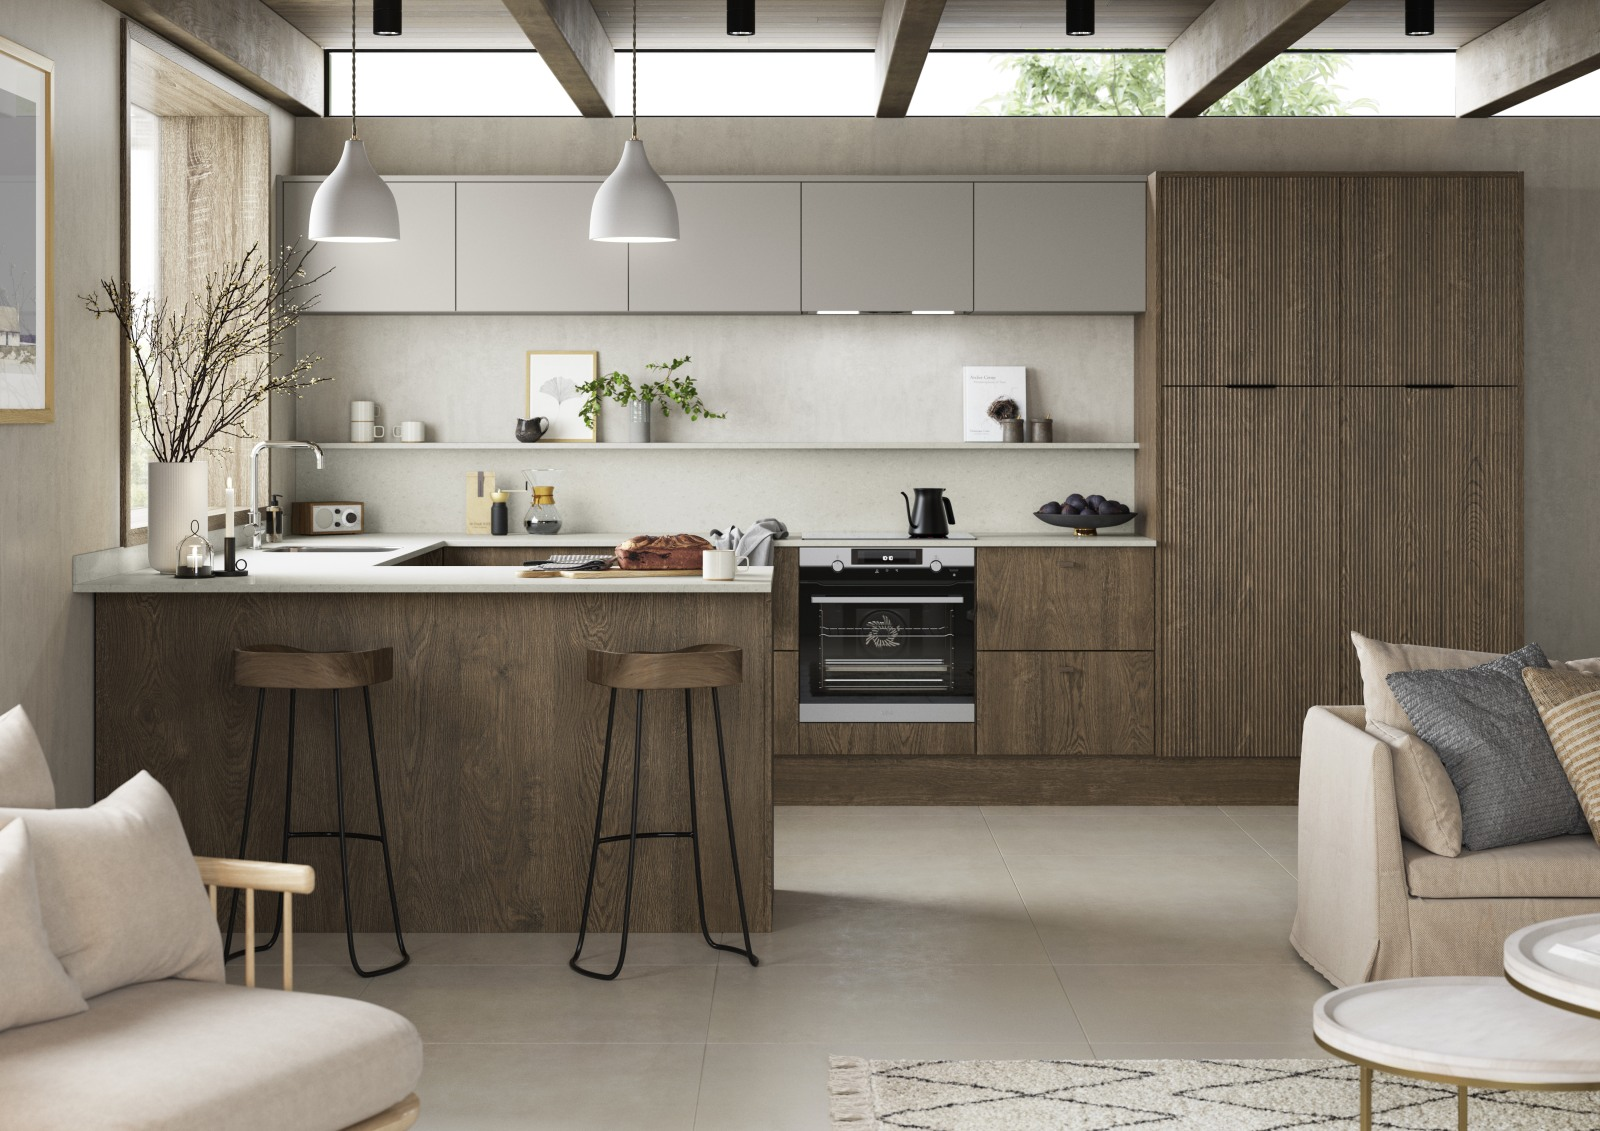 Magnet Kitchens 2021 Nordic Nature range with Fluted oak doors and Integra Hoxton Pebble cabinets with Dekton Aeri worktop. Open plan kitchen living area in Scandi style.